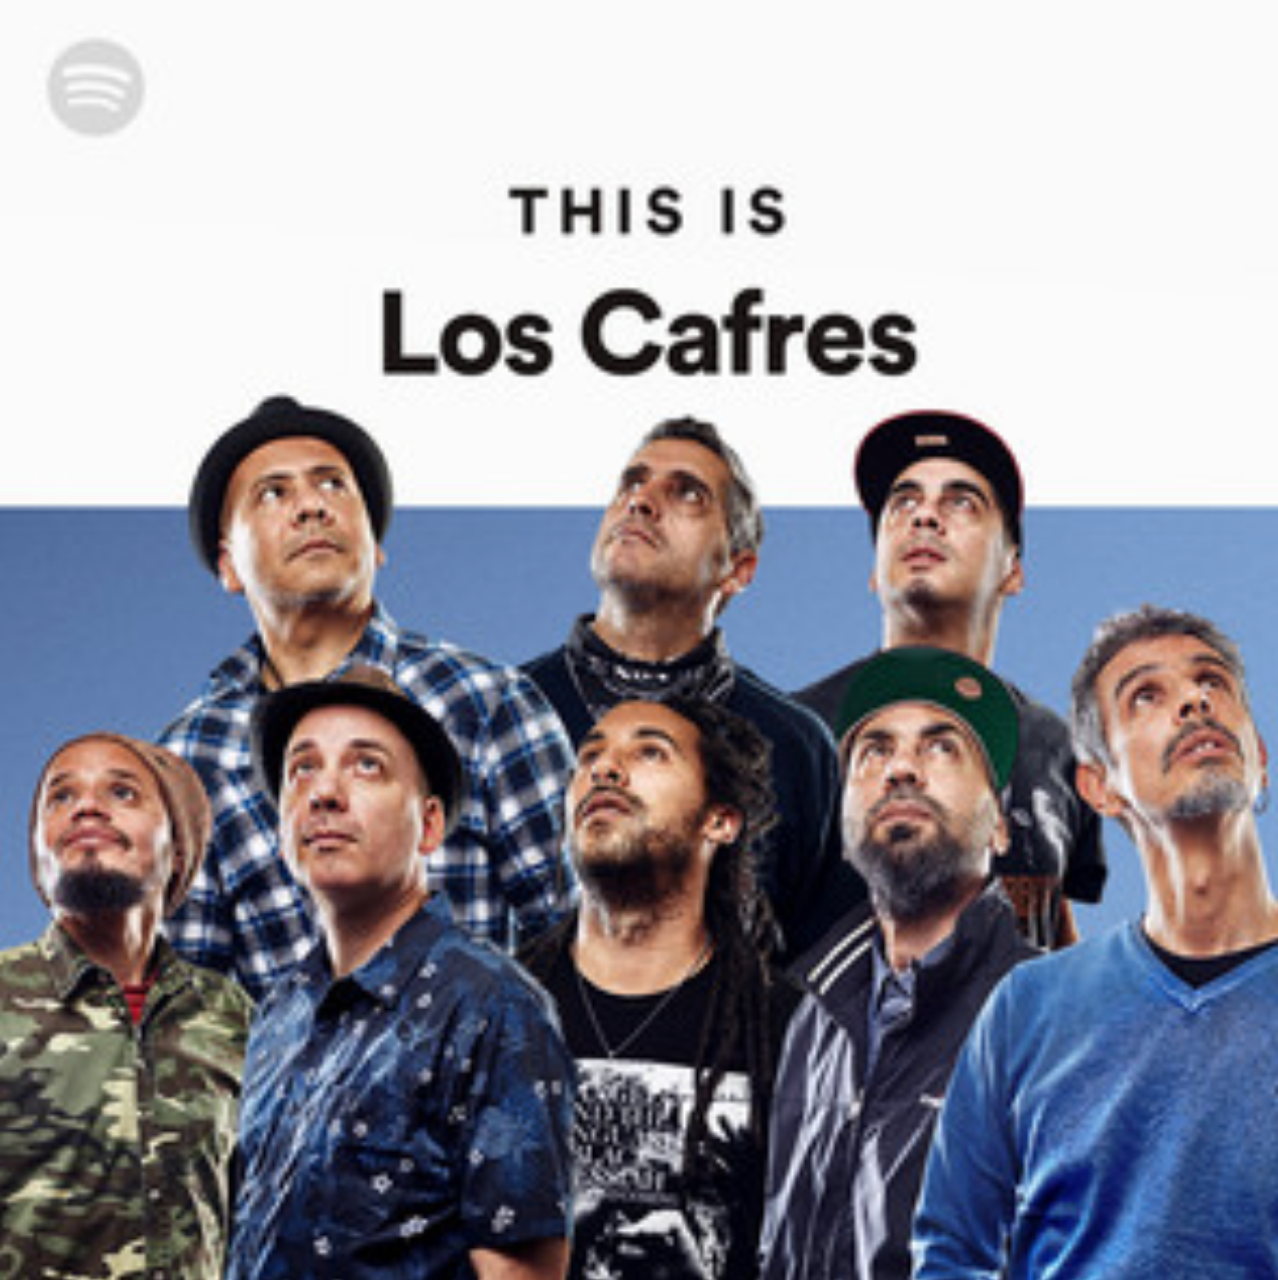 Macintosh HD:Users:silvina:Downloads:THIS IS LOS CAFRES.png